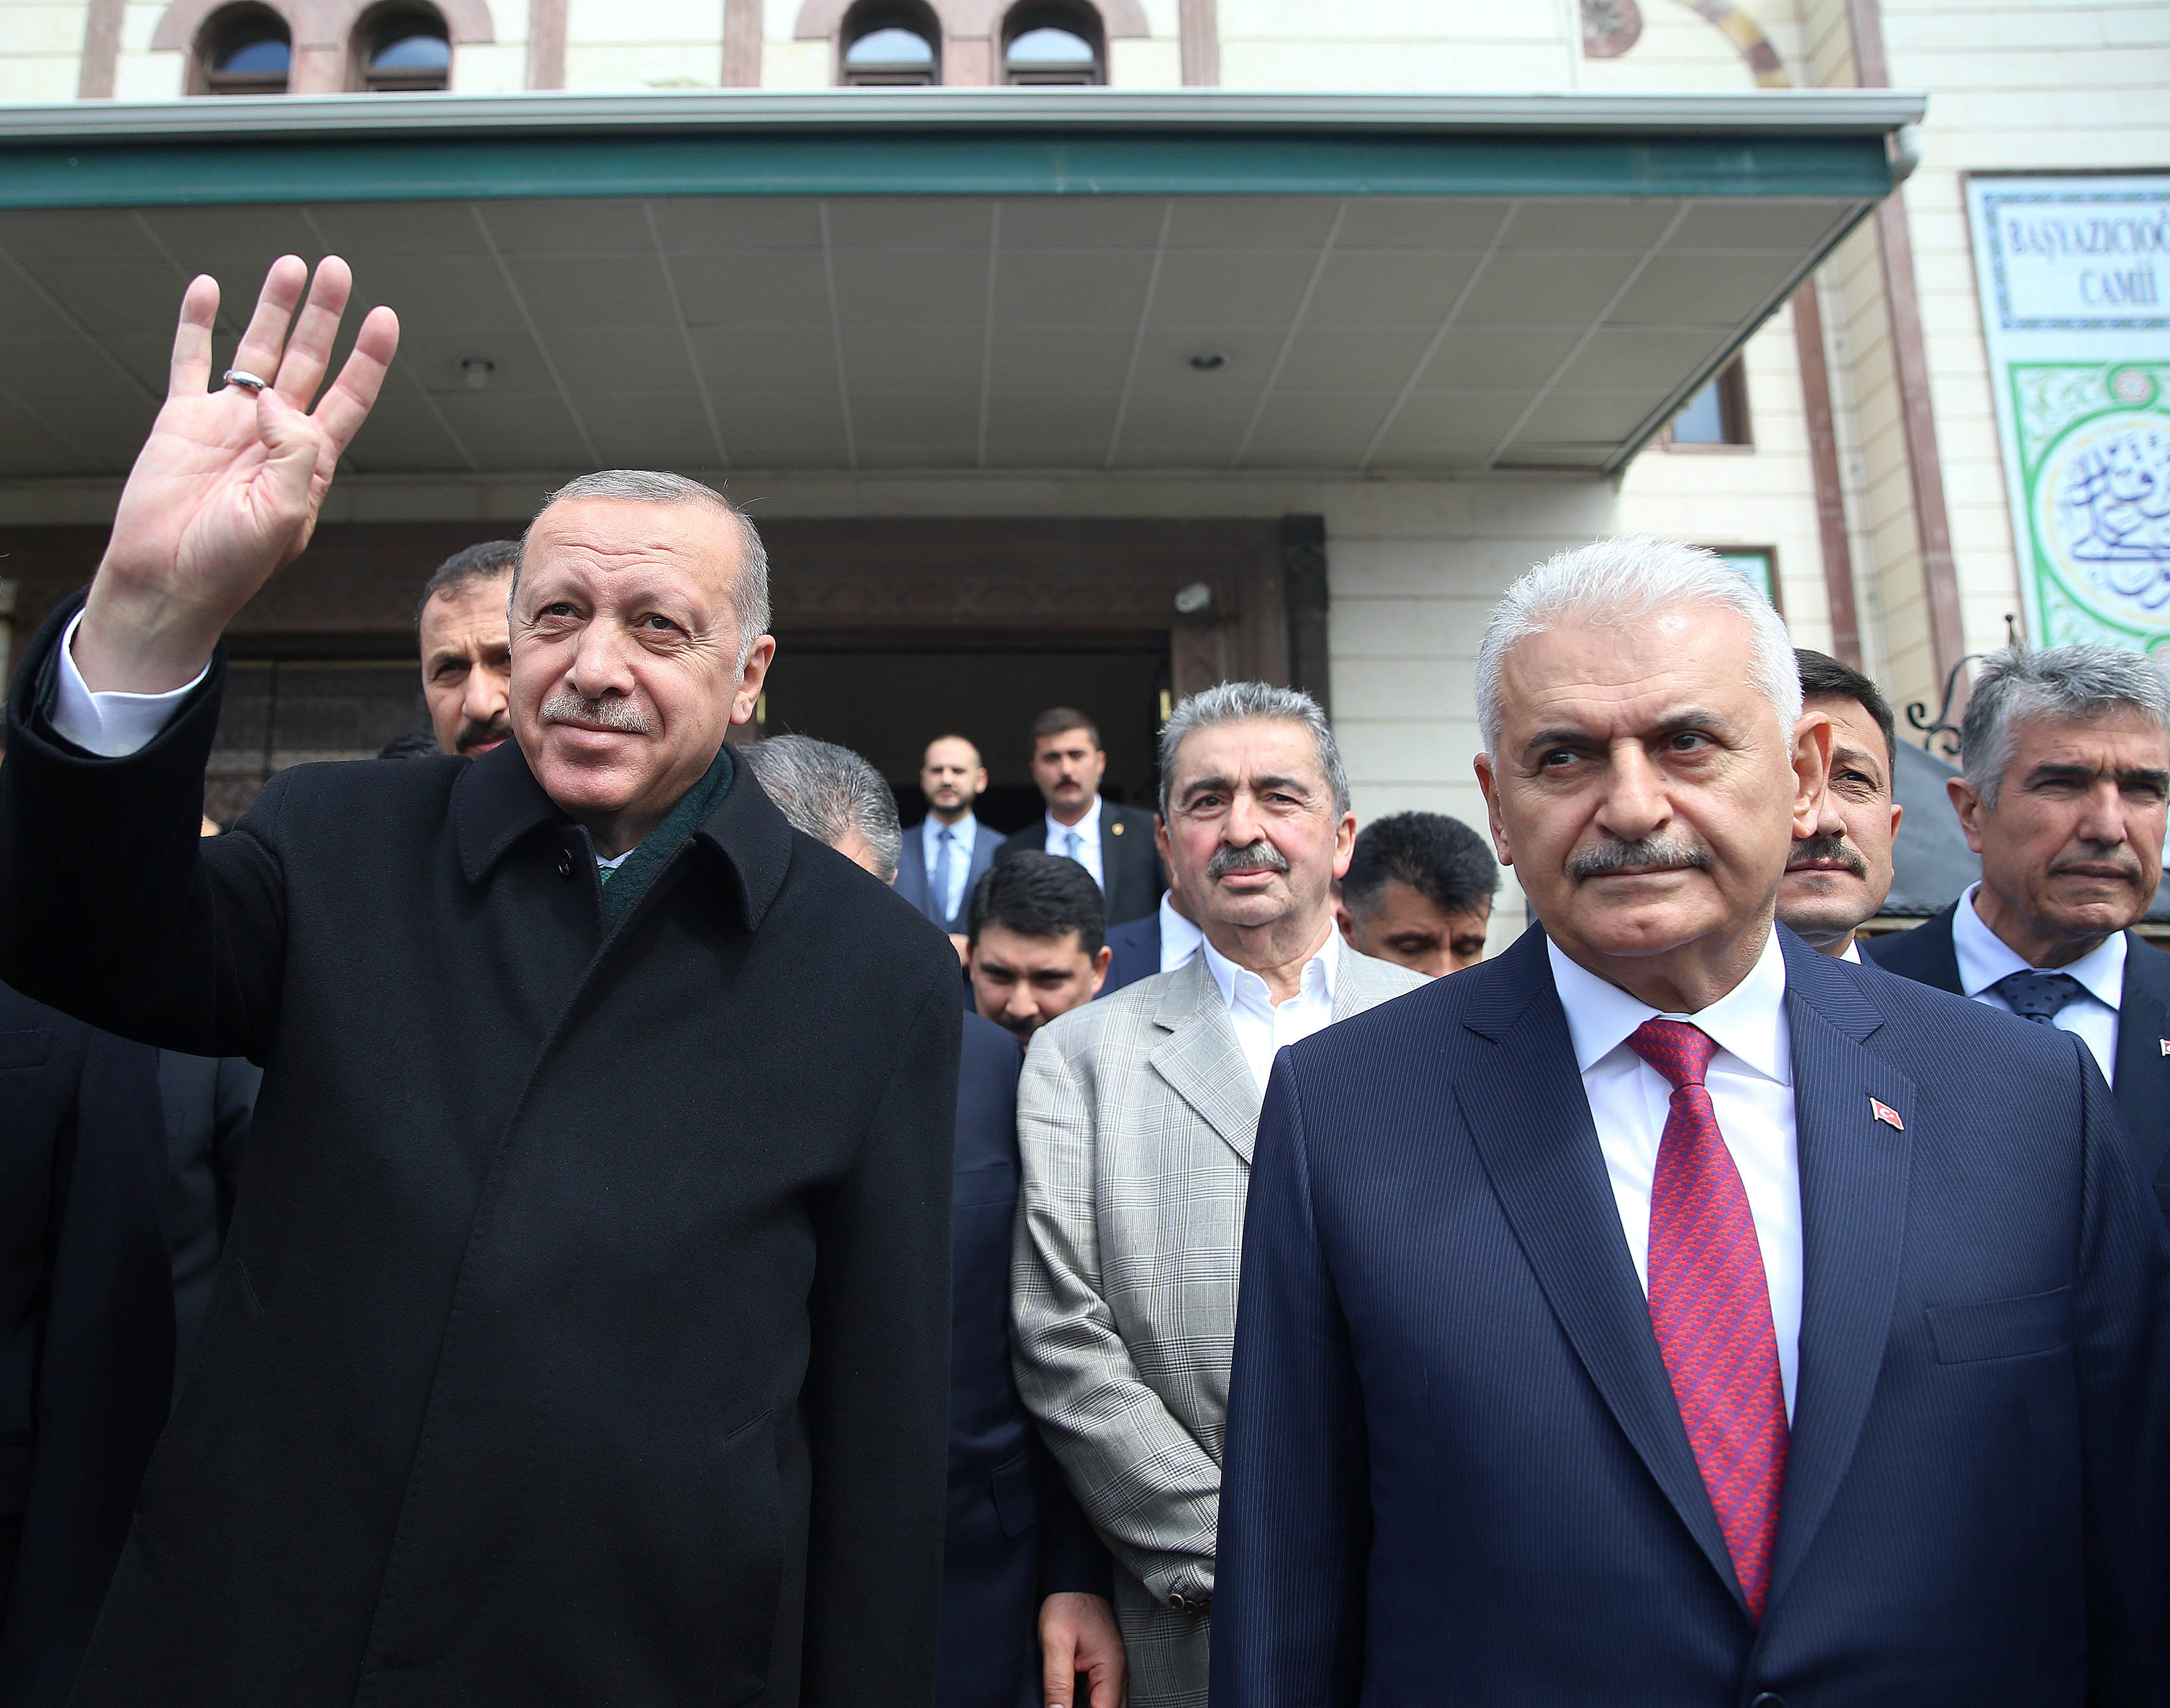 FILE PHOTO: Turkish President Tayyip Erdogan is flanked by Binali Yildirim, mayoral candidate of the ruling AK Party in Istanbul, as they leave a mosque together after Friday prayers in Ankara, Turkey, April 12, 2019. Murat Cetinmuhurdar/Presidential Press Office/Handout via REUTERS